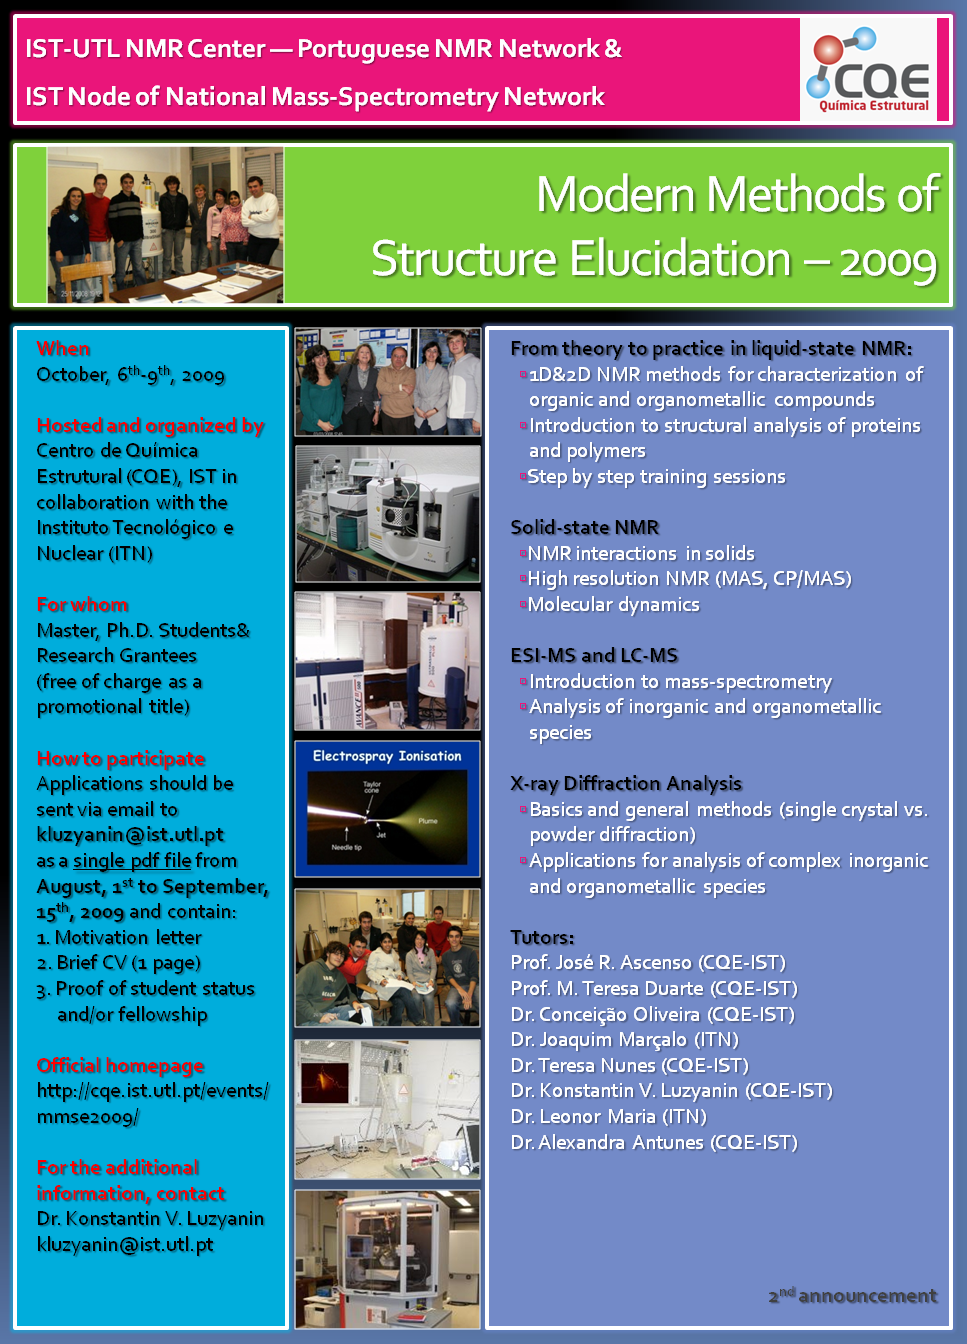 Previous Editions • Modern Methods of Structure Elucidation (MMSE)